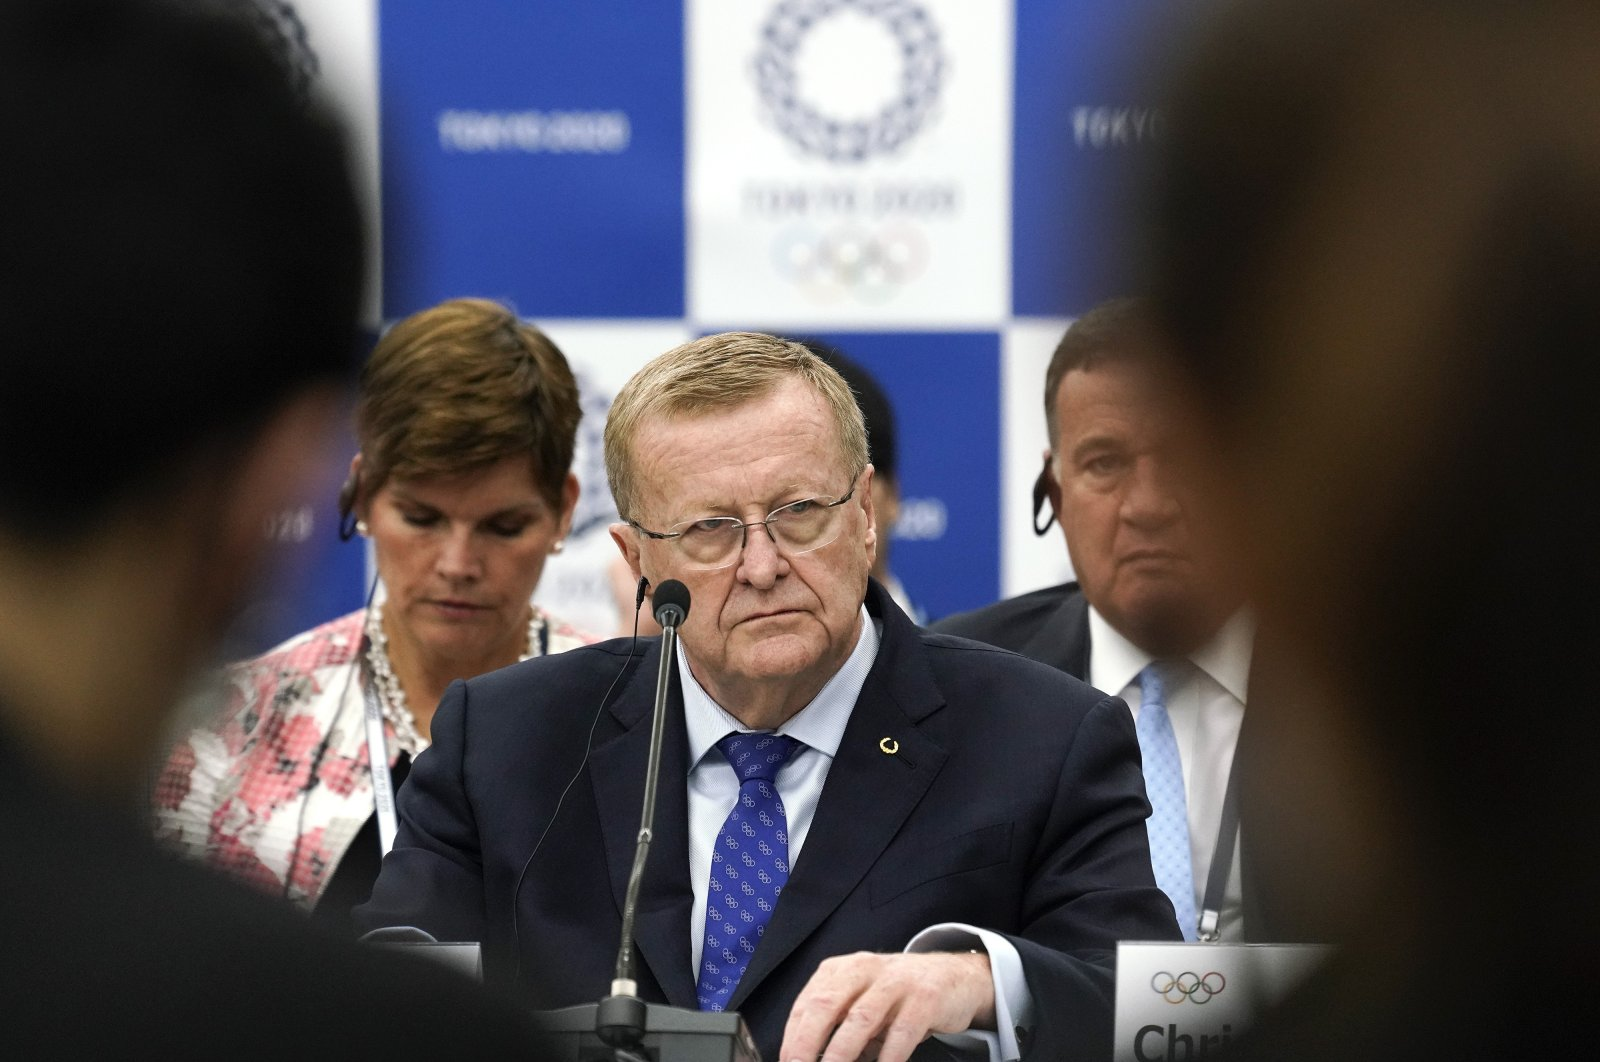 IOC Vice President John Coates during a press conference in Tokyo, Japan, Nov. 1, 2019. (AP Photo)